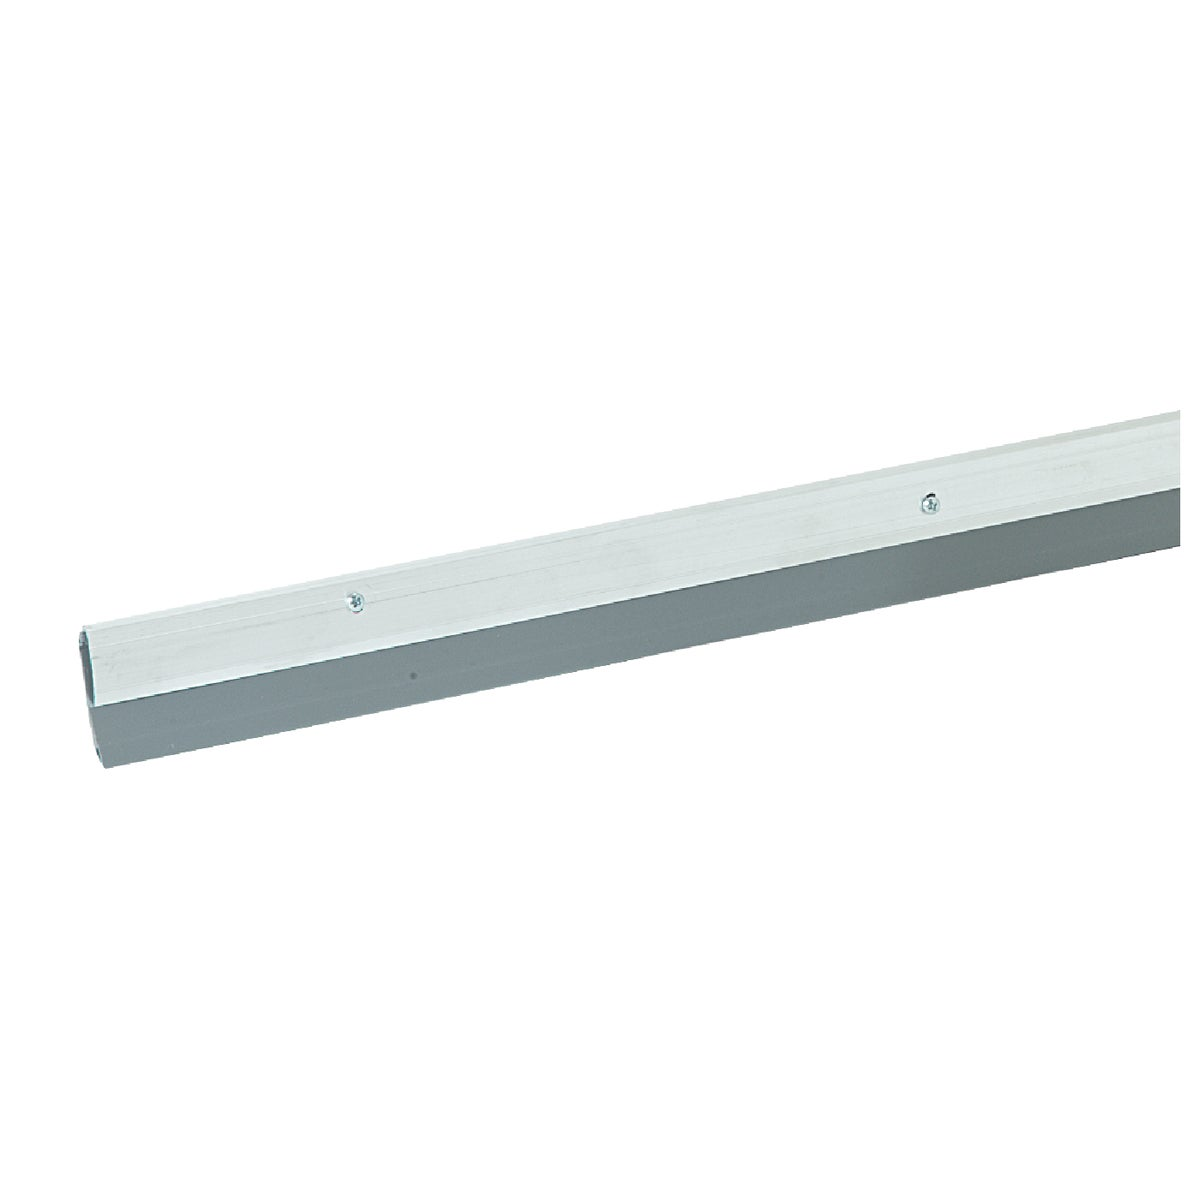 "36"" ALUM EXV DOOR SWEEP - 05389 by M D Building Prod"